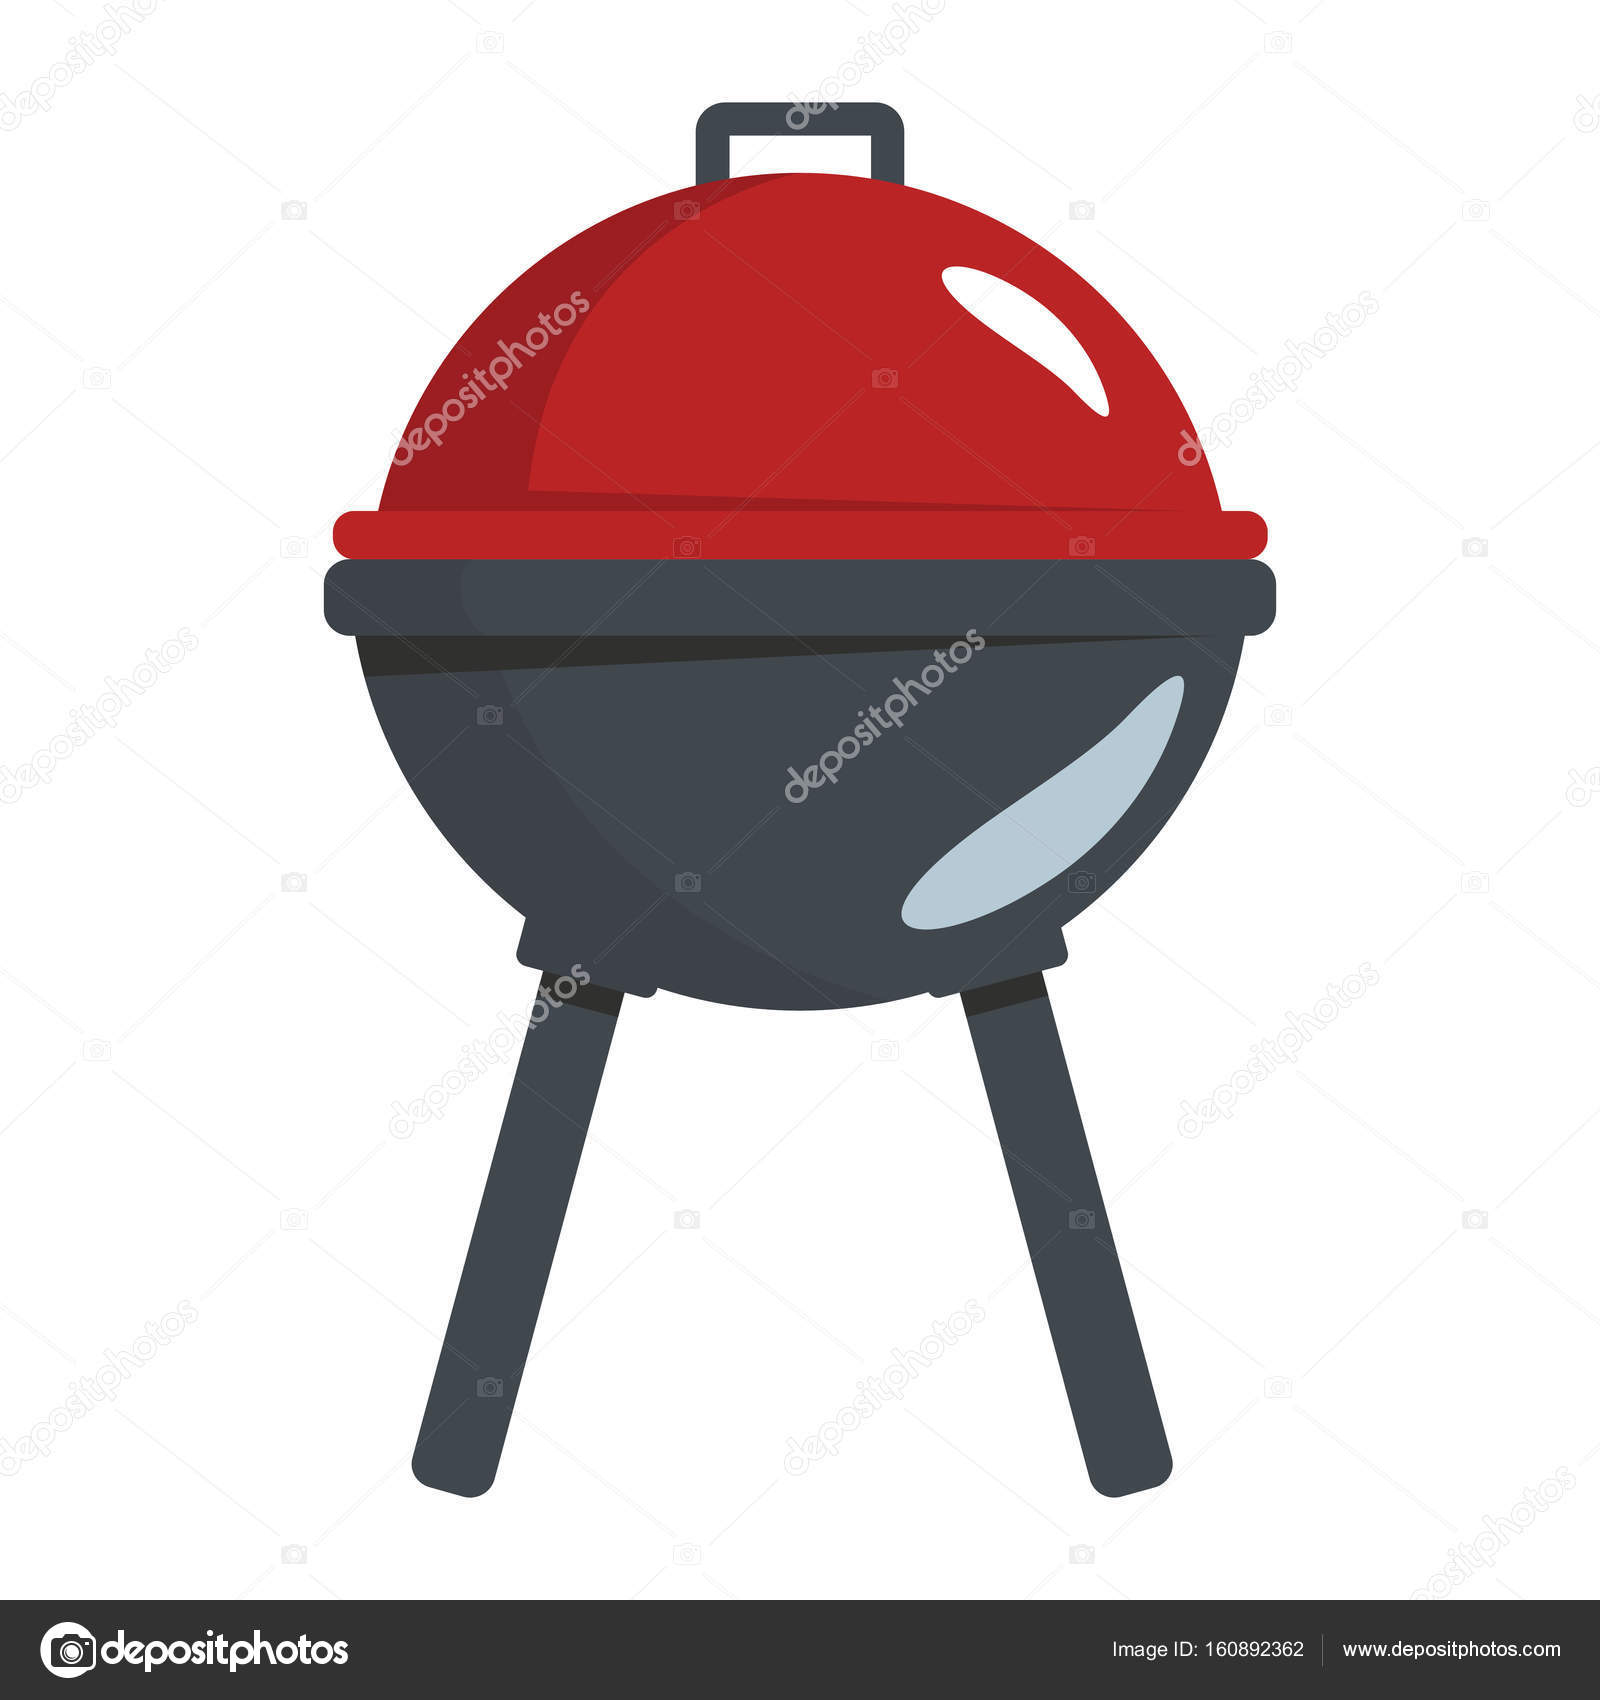 BBQ grill in cartoon flat style isolated on white background